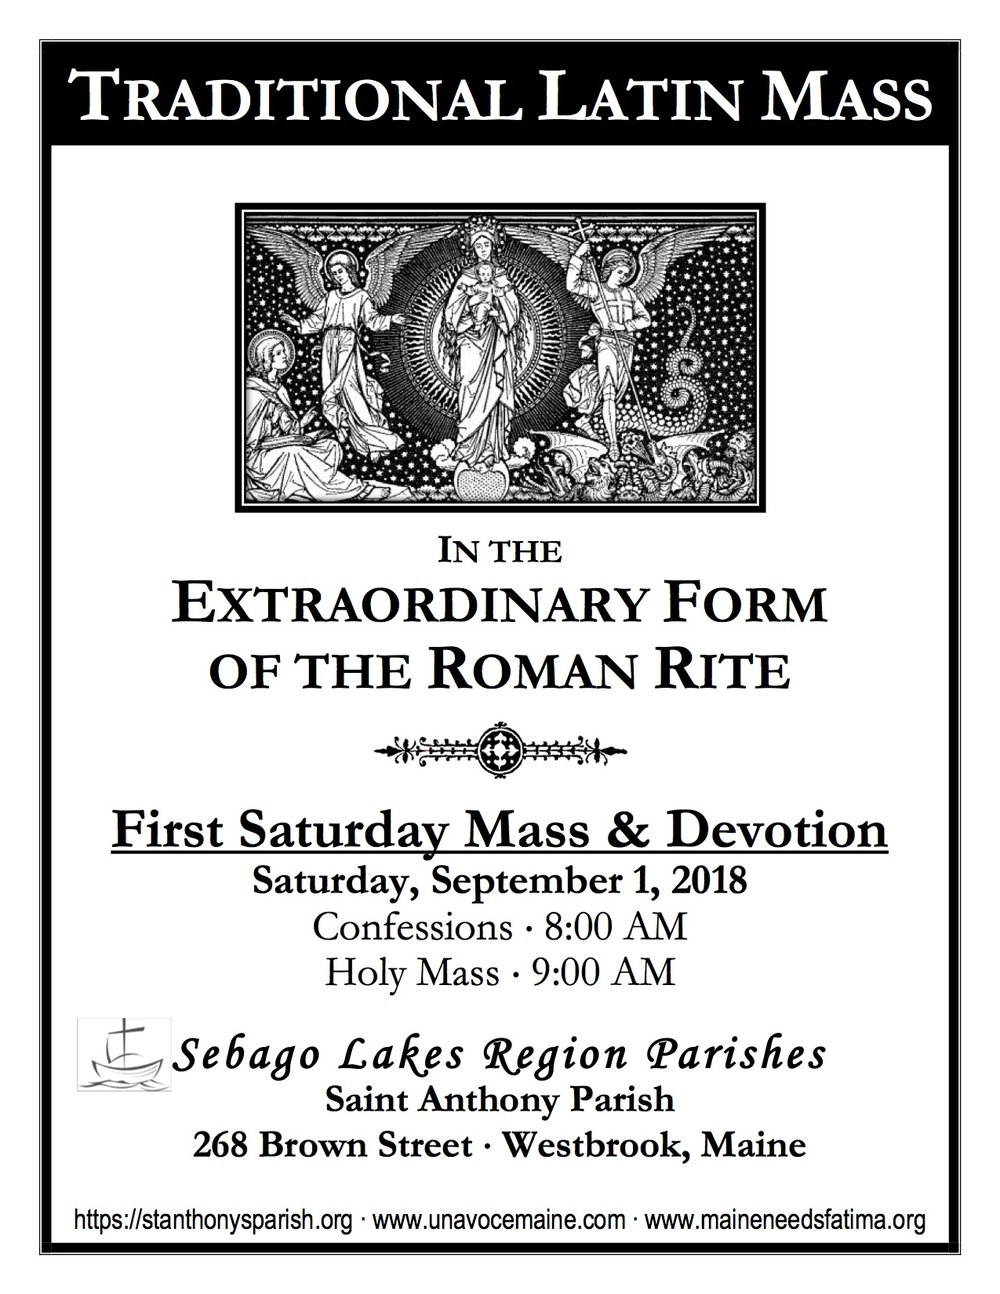 BVM Flyer Septmber 1, 2018.jpg